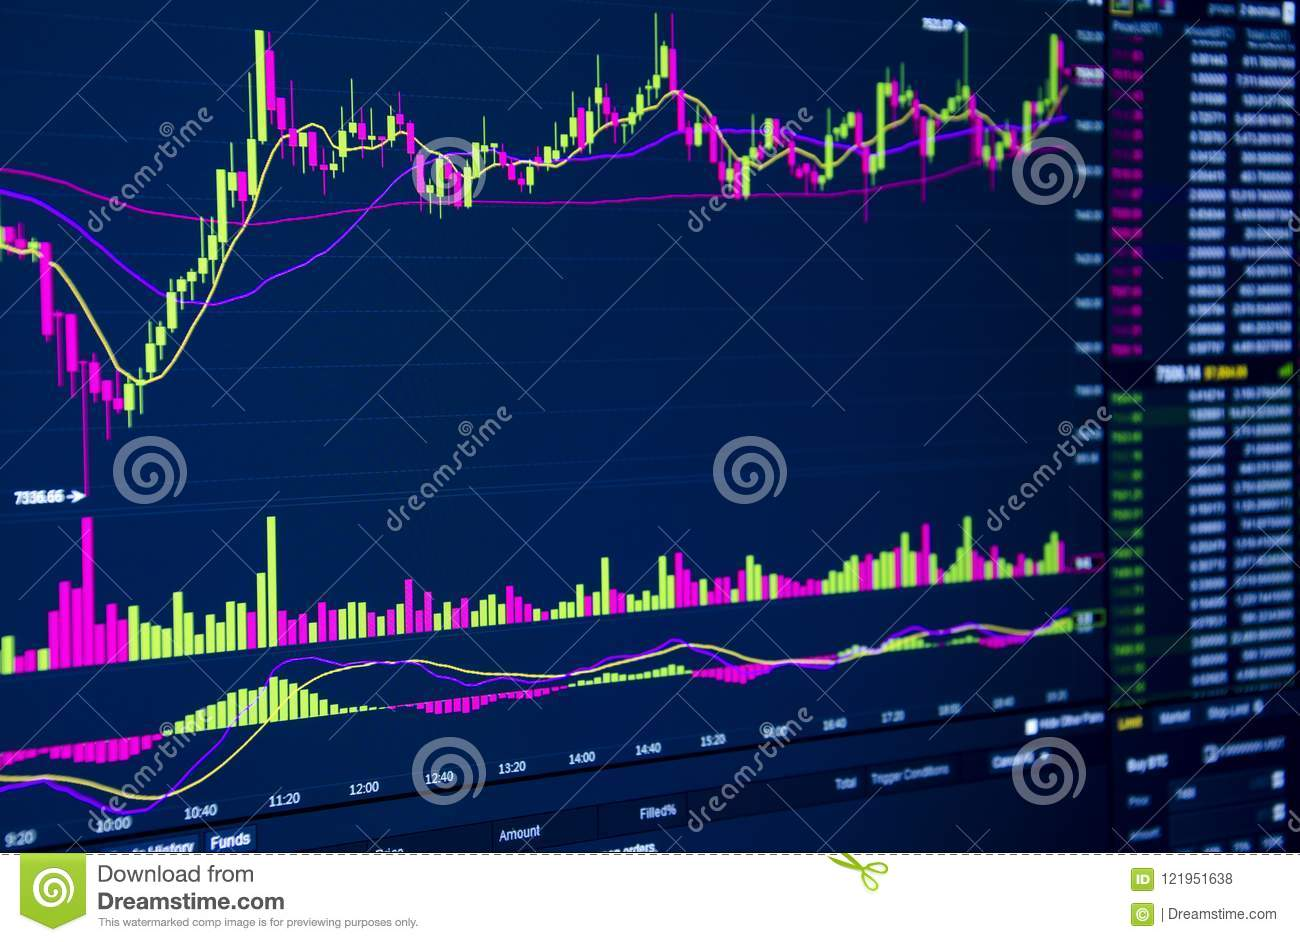 Stock market graph and candlestick chart for financial investment concept.